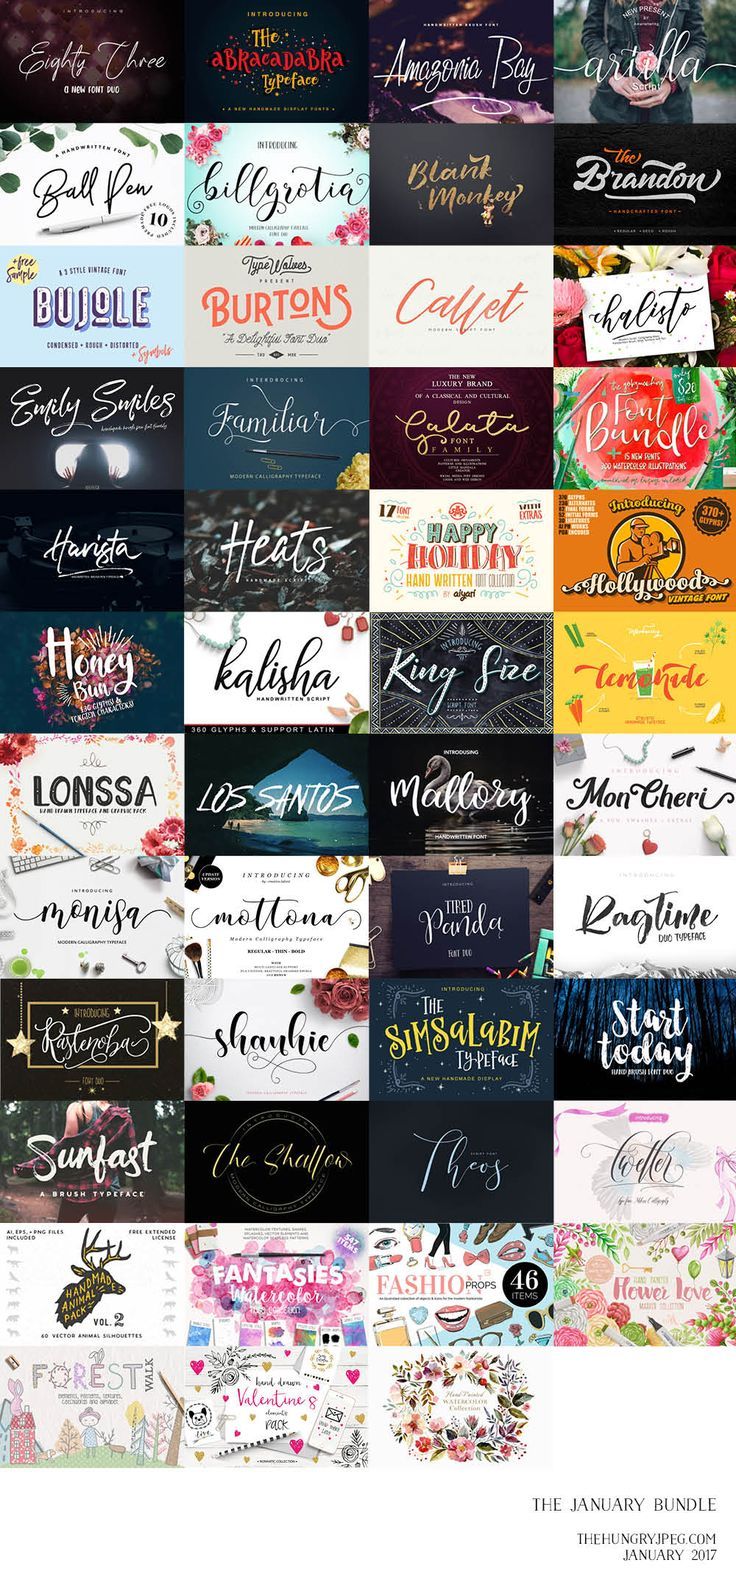 Our first bundle of 2017 is also our biggest EVER bundle, including a whopping 82 fonts!! Yes you read that correctly, 82 fonts over 40 packs. Not to mention we have also included 7 gorgeous graphics packs which containhundreds of hand crafted illustrations. Get a HUGE97% OFF this amazing collection today!! This huge pack comes with our Complete Commercial License allowing you to use our products across a wide range of projects for both personal and business use.